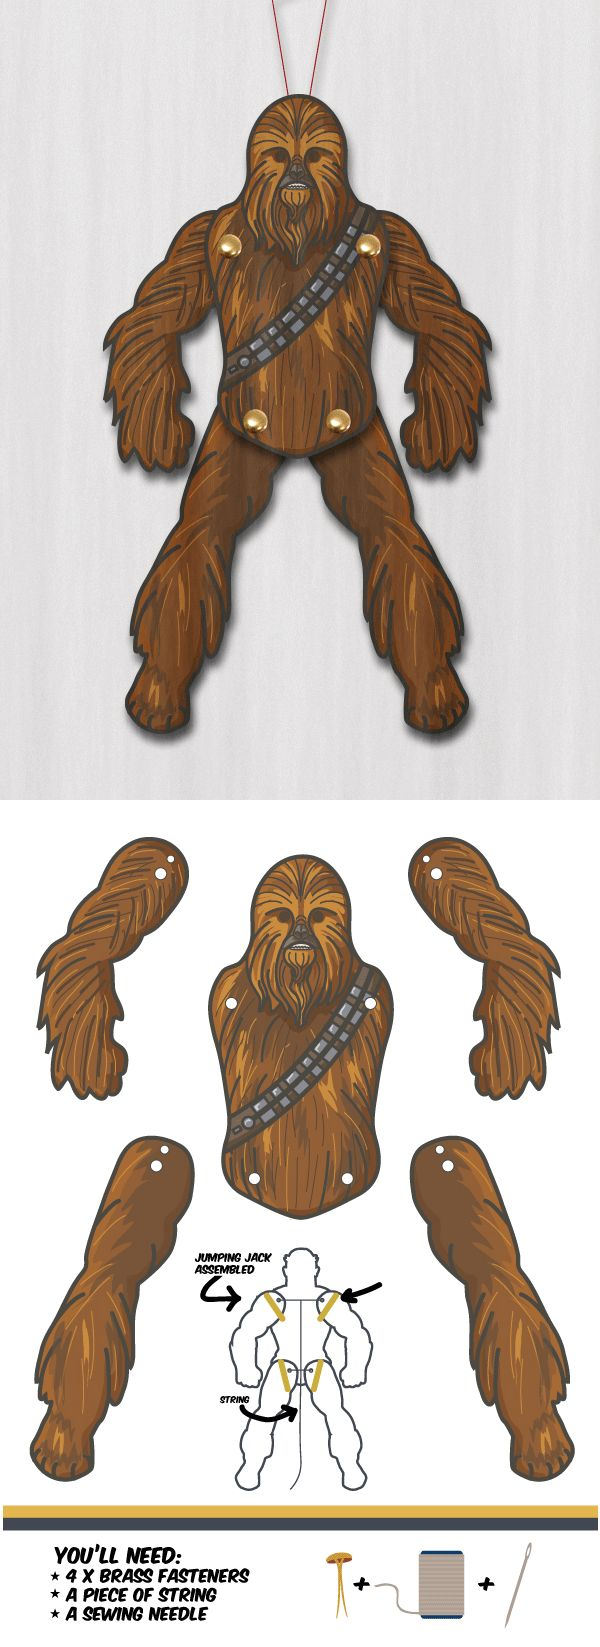 DIY Jumping Jack Printables from M Gulin.You can in the DIY Jumping Jack Chewbacca here. There are some jumping jacks in black and white that you can color in yourself.Here's just a sampling of the free jumping jack printables at M Gulin's site.